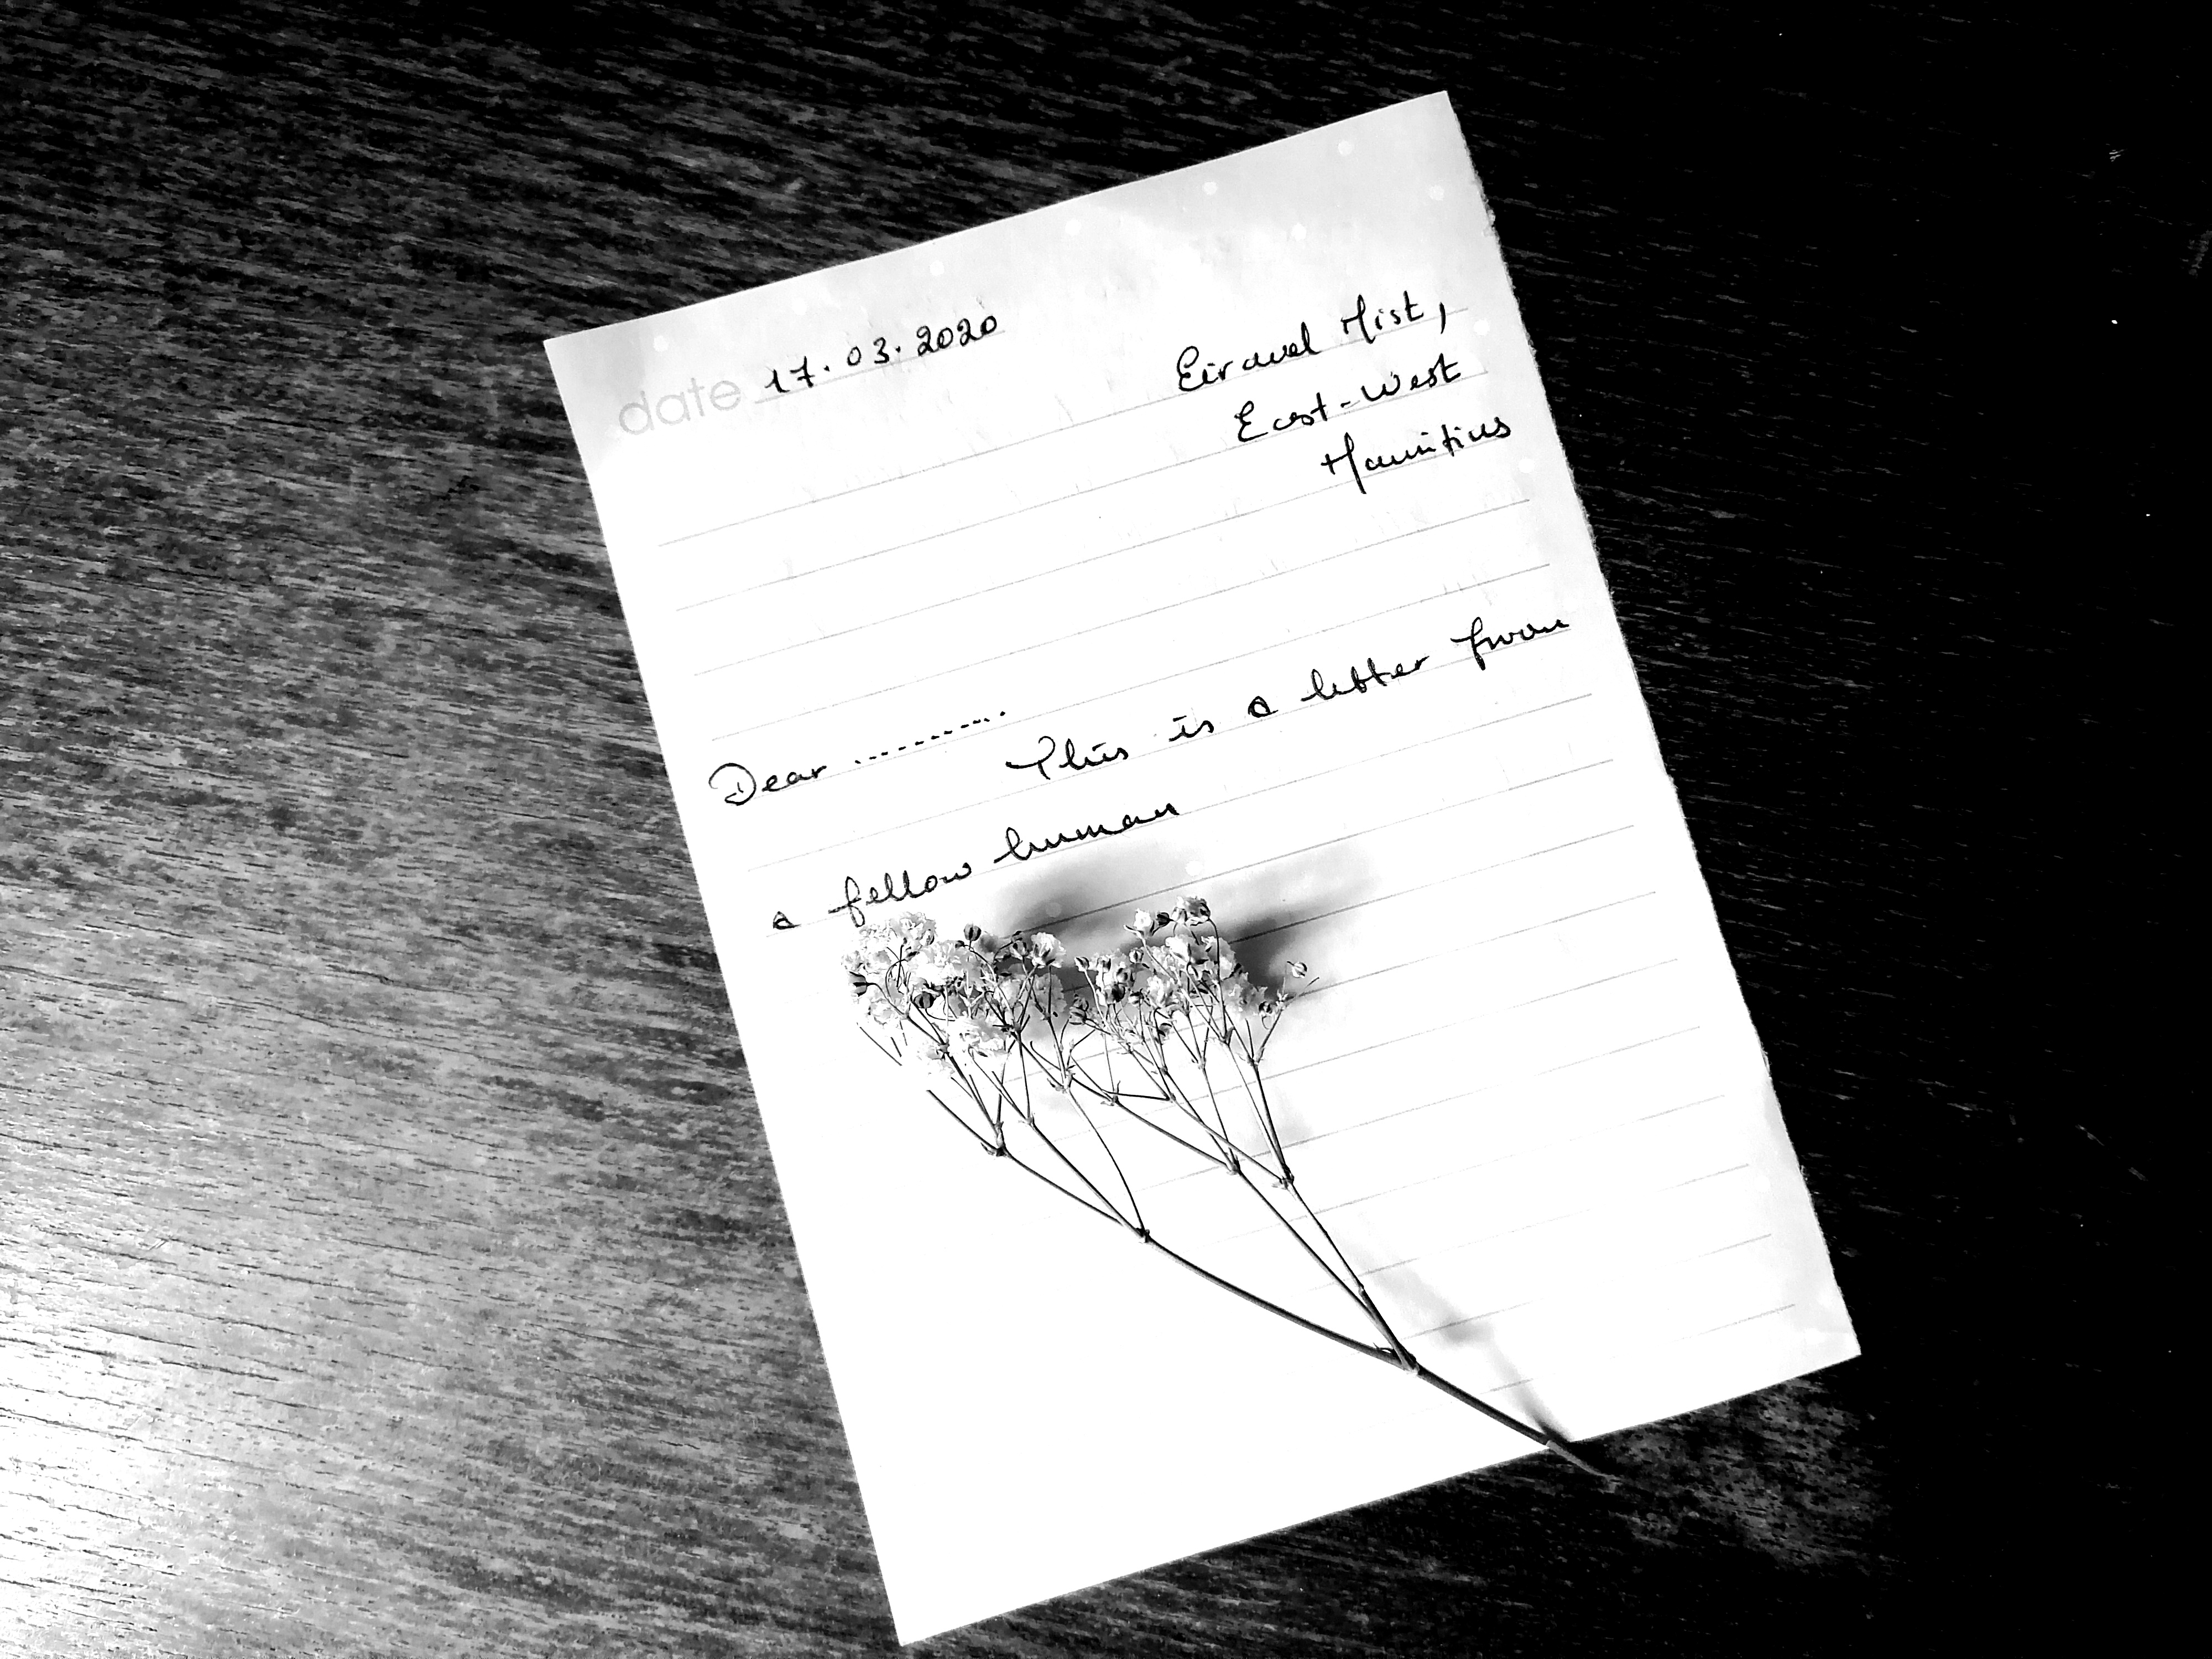 Black and white photo of a withered flowered branch on a handwritten letter note,  and pen